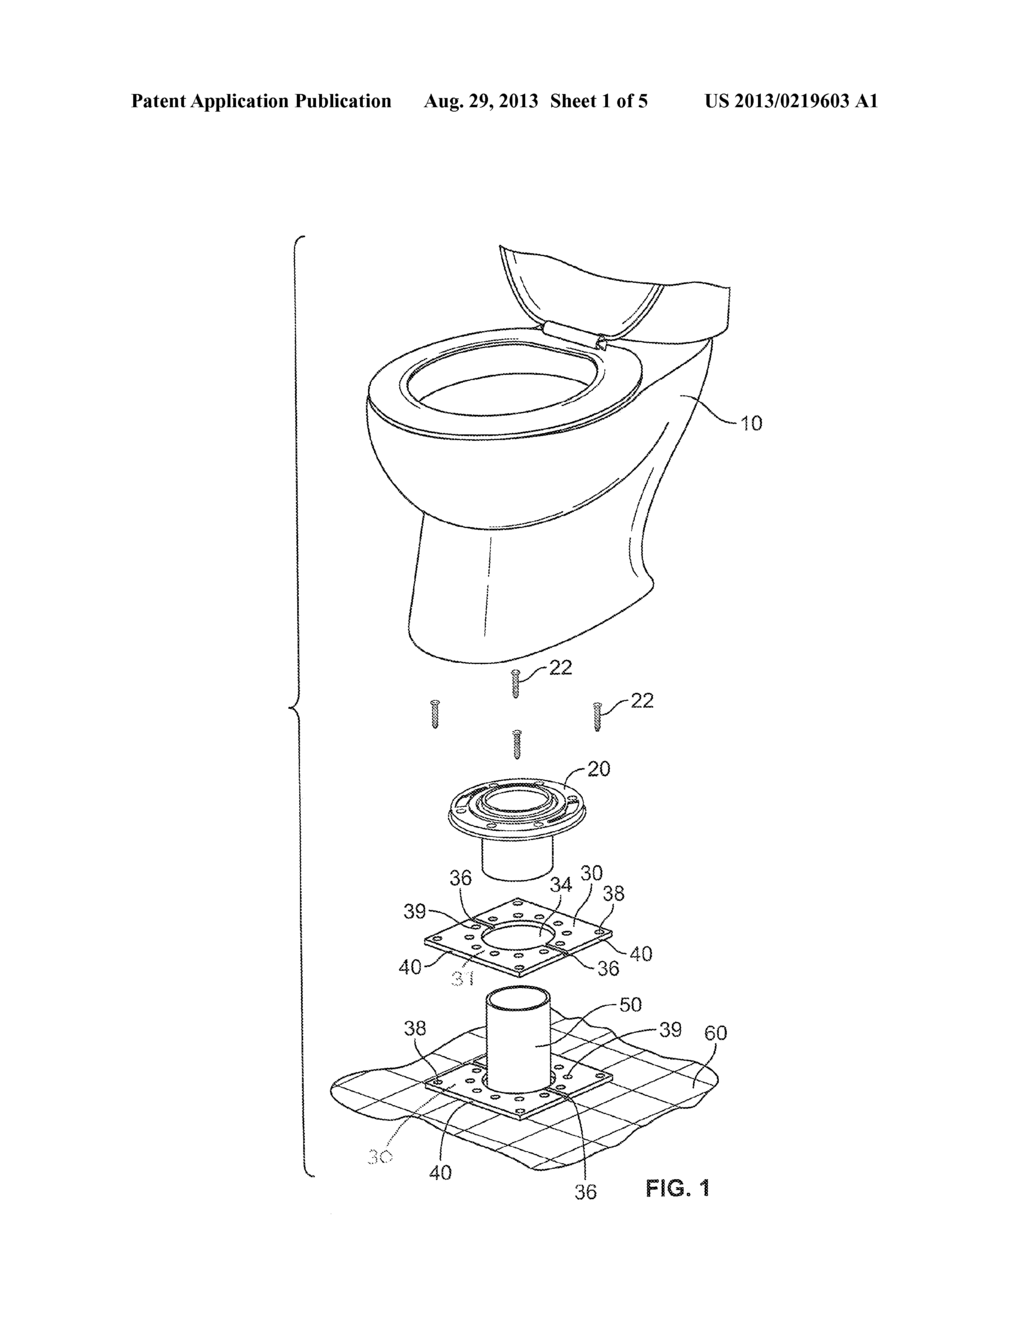 30 Diagram Of A Toilet